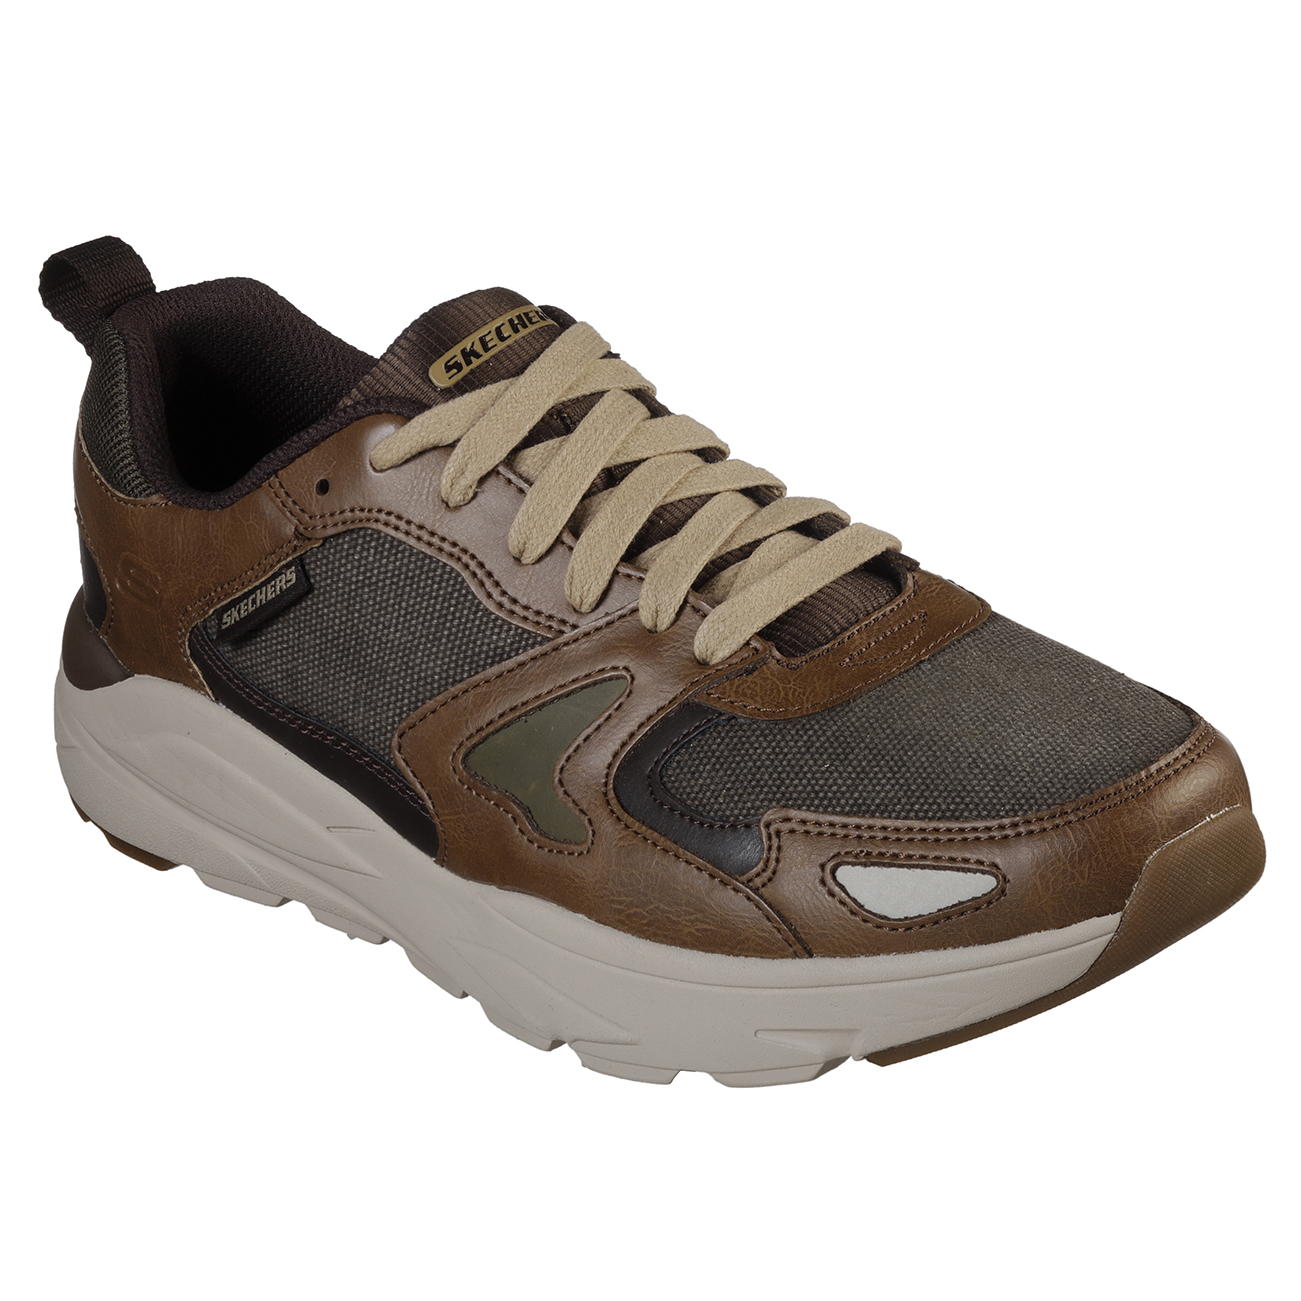 Skechers Verrado Brogen Relaxed Fit